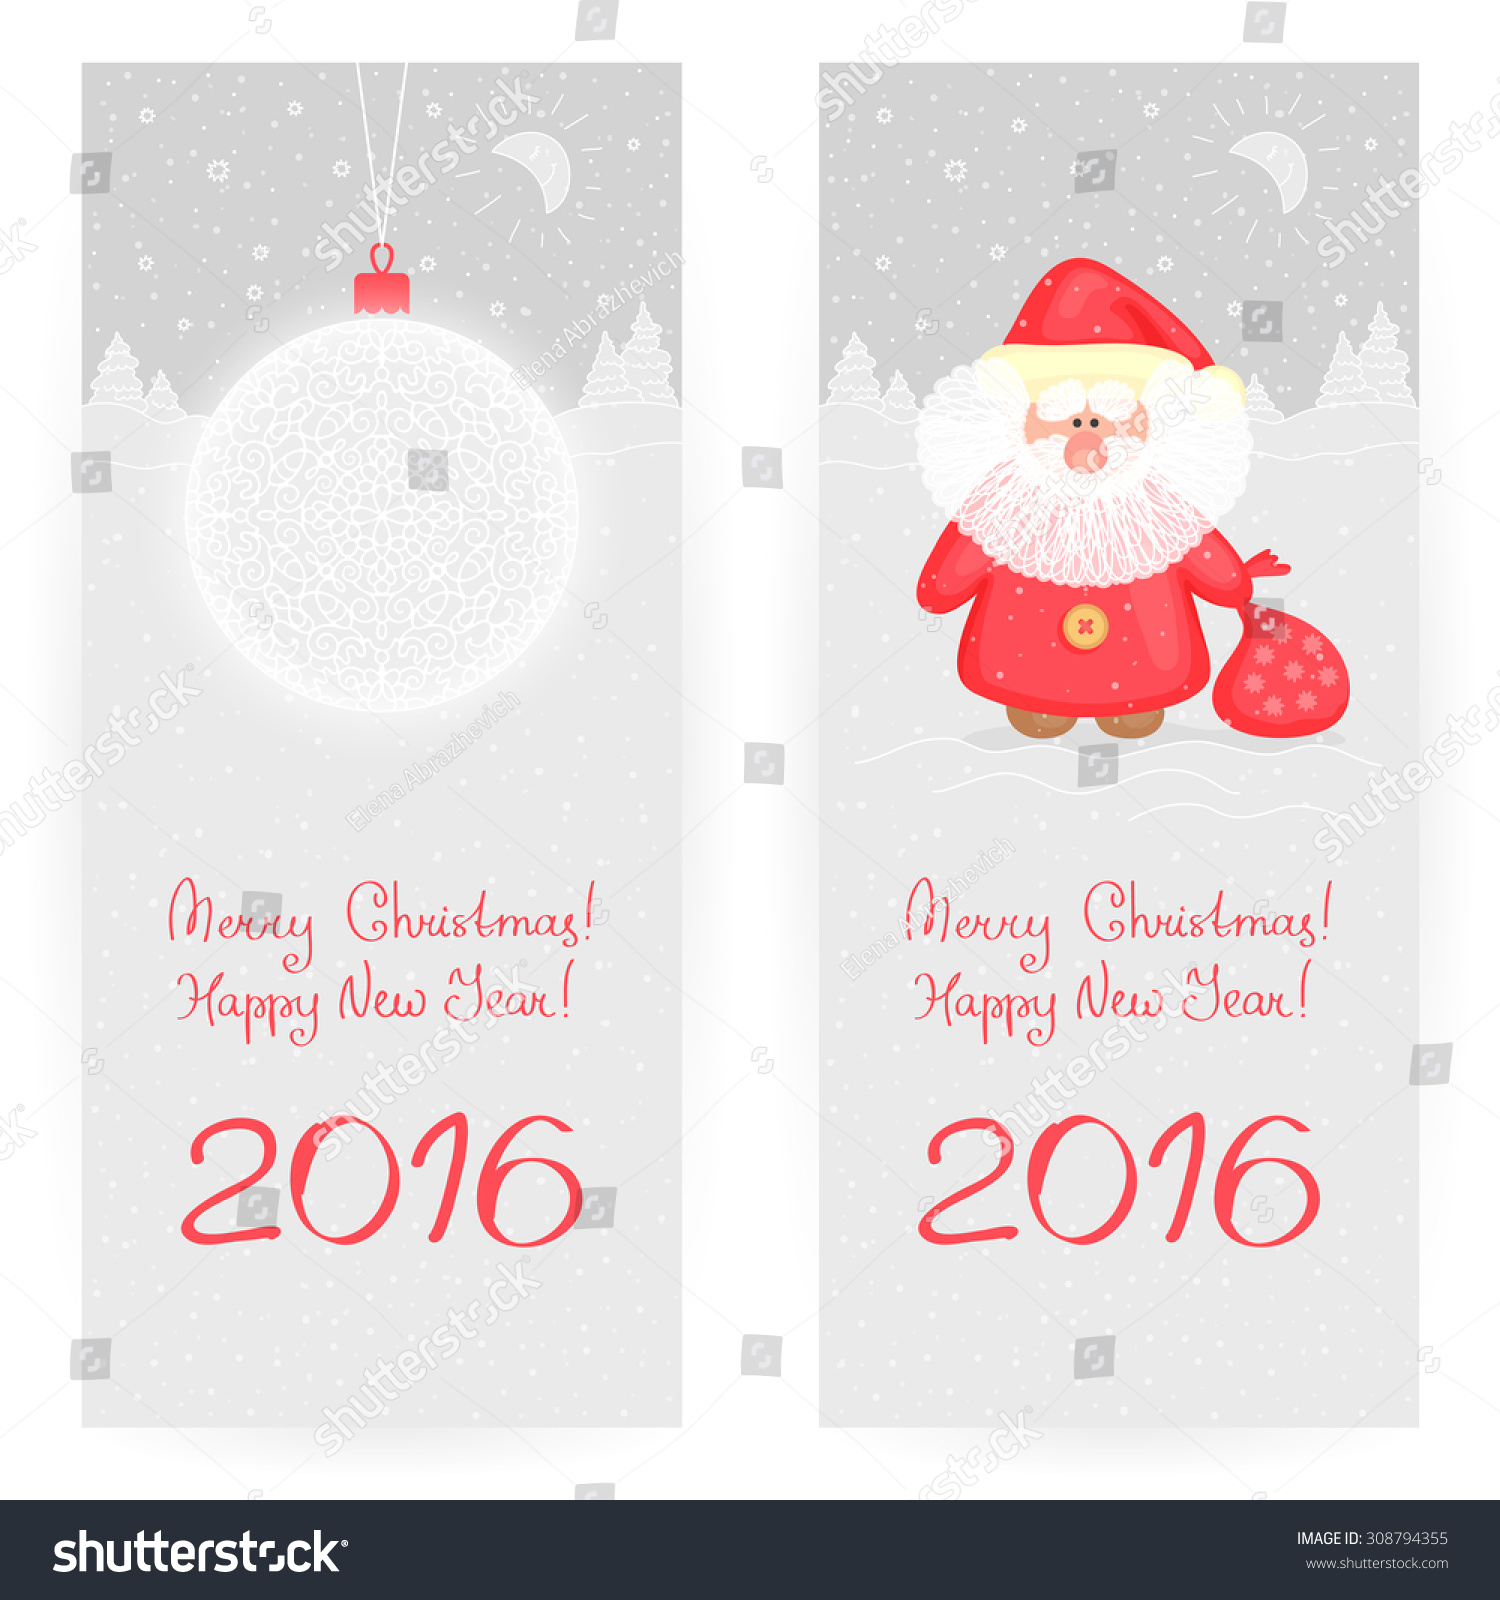 Two Festive Greeting Cards Grayandred Colors Stock Vector Royalty